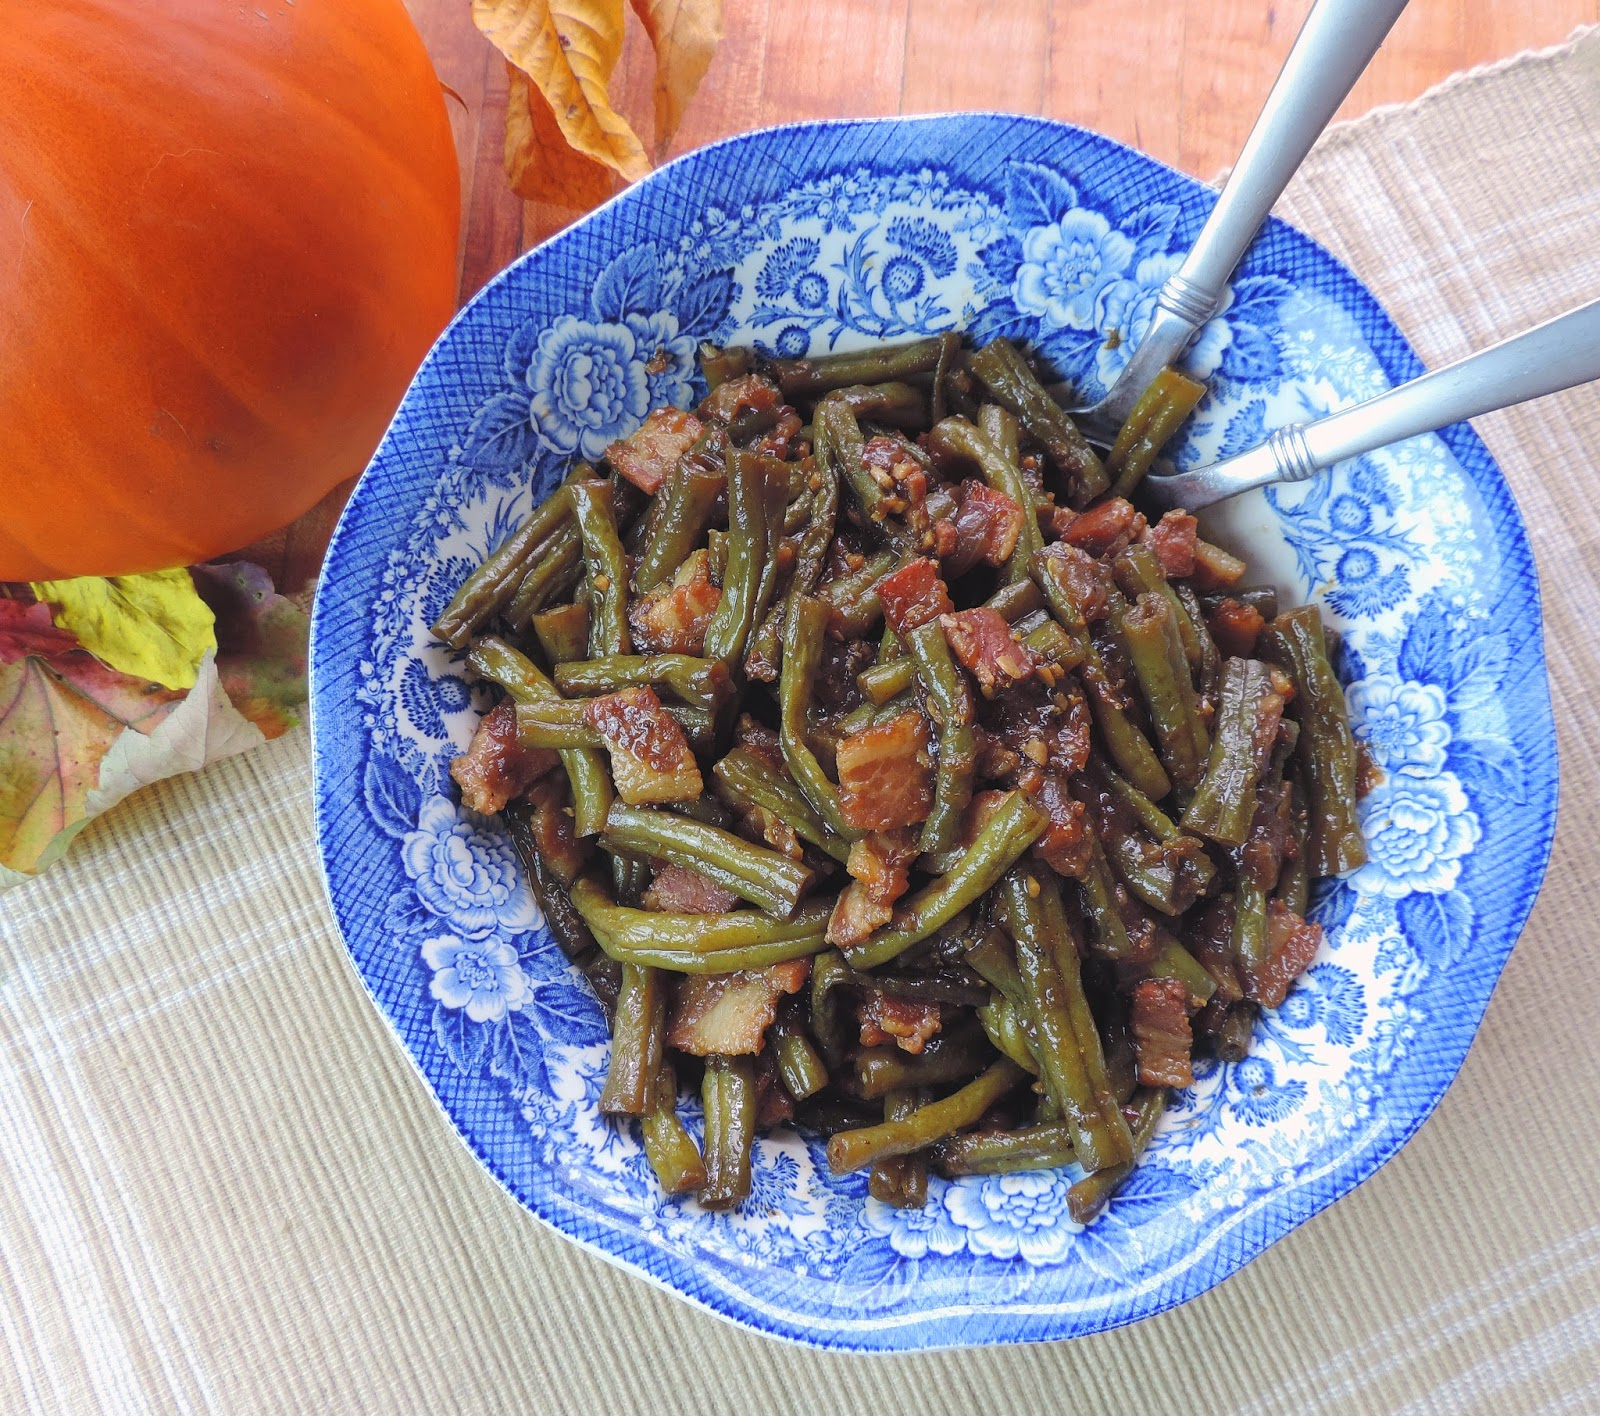 The finished country style green beans in a serving dish.